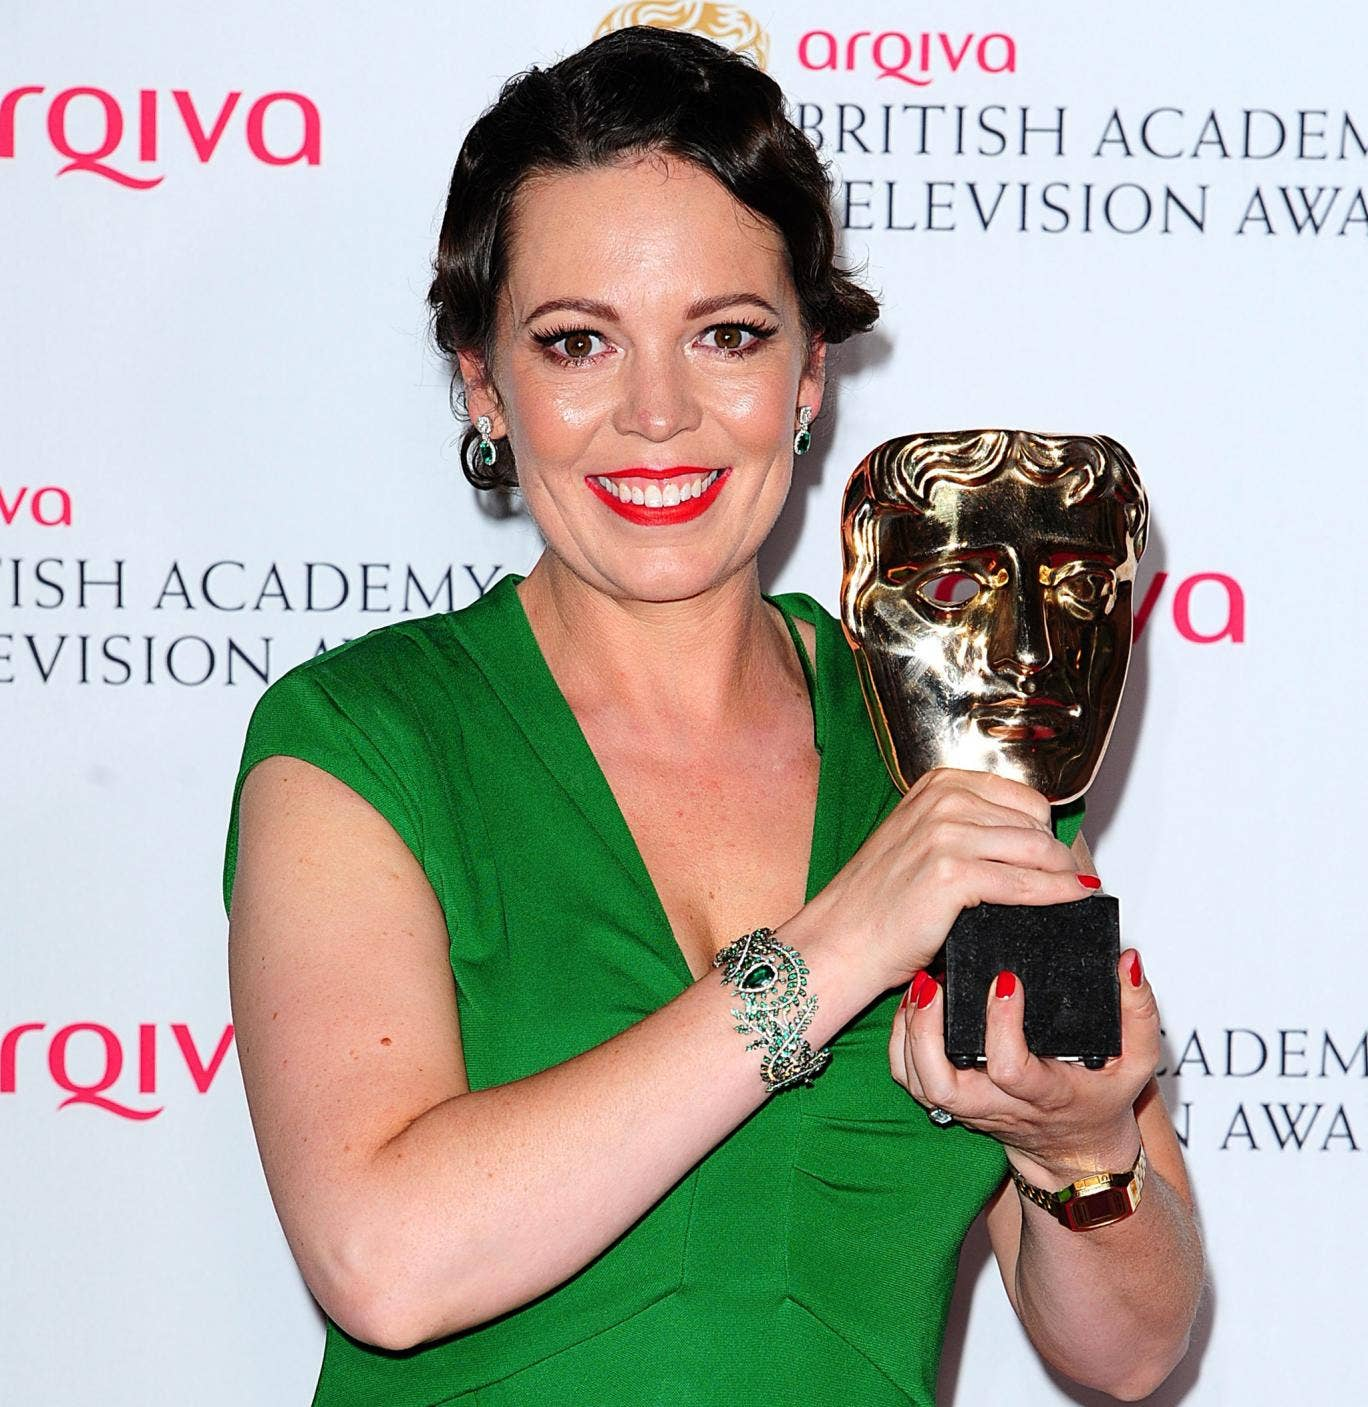 Olivia Colman with her award, the third TV Bafta she has received in two years